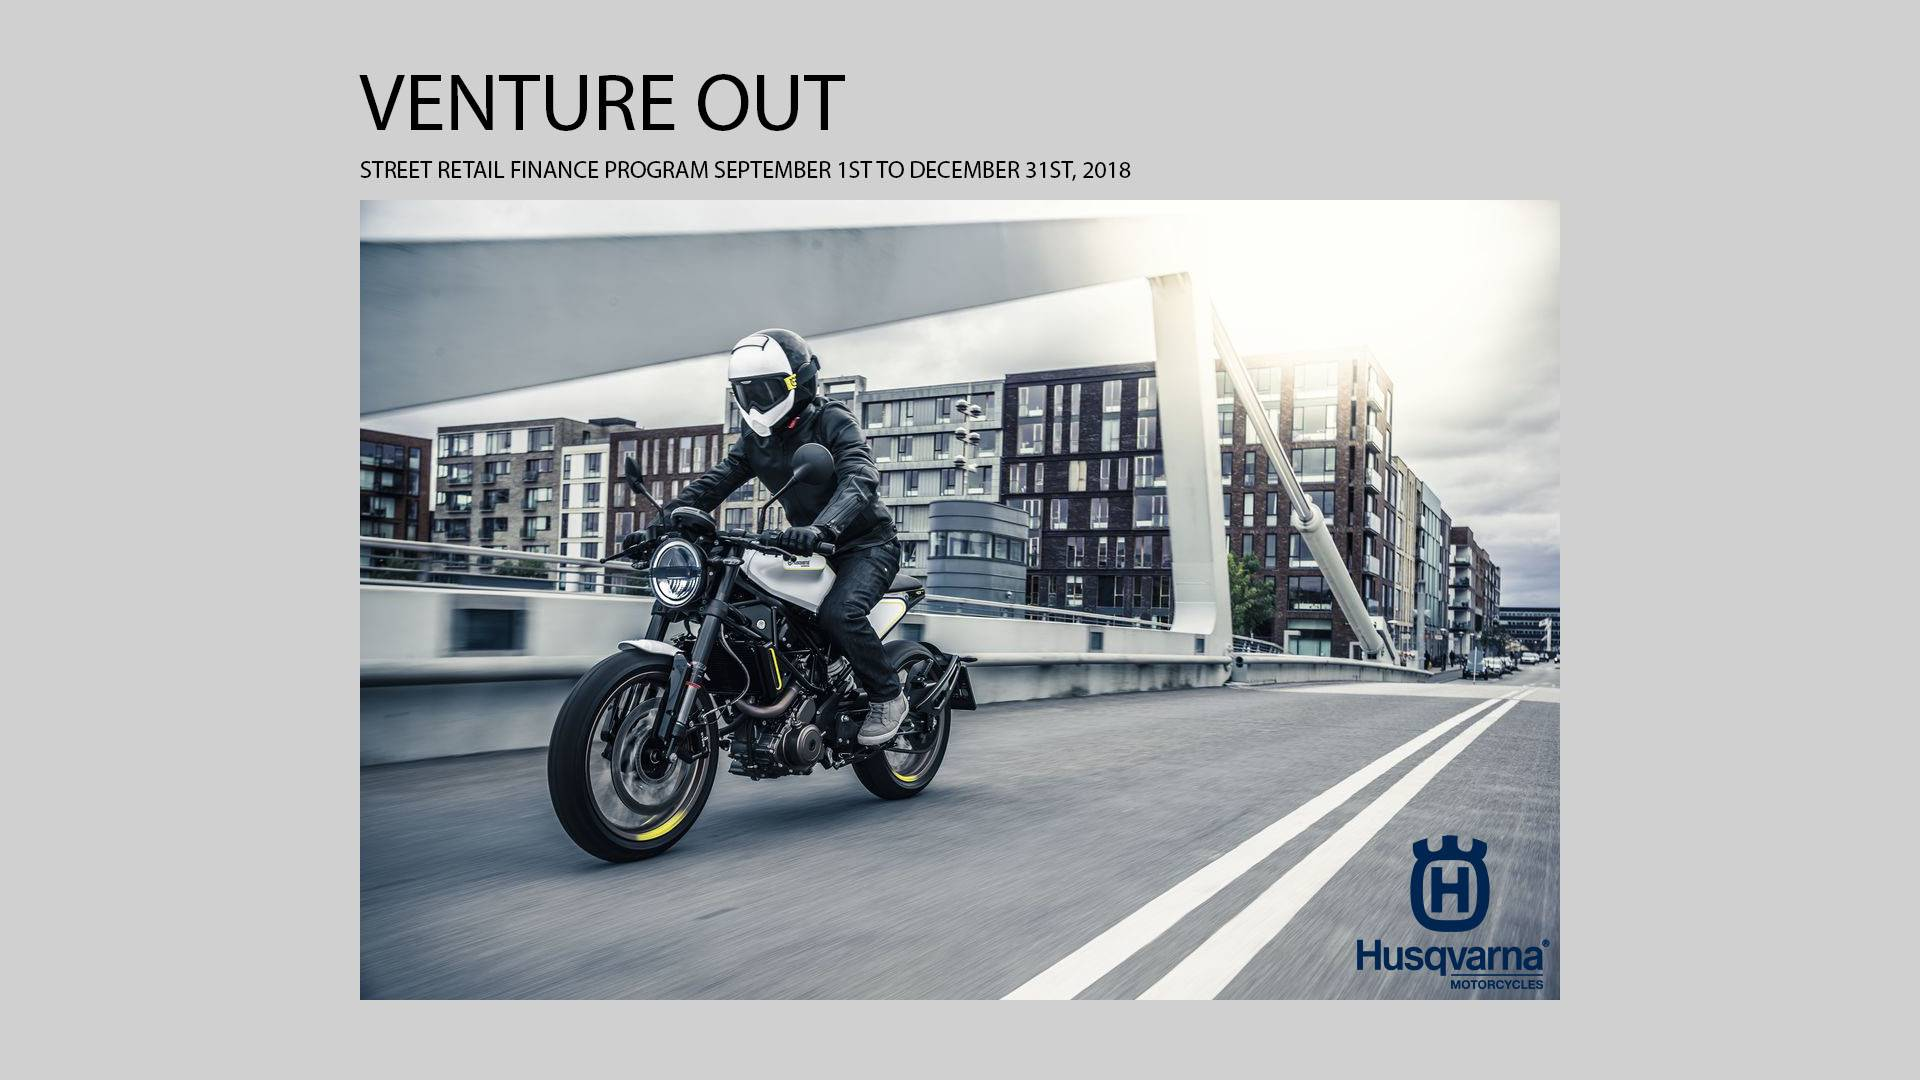 Husqvarna - Venture Out - Street Retail Finance Program